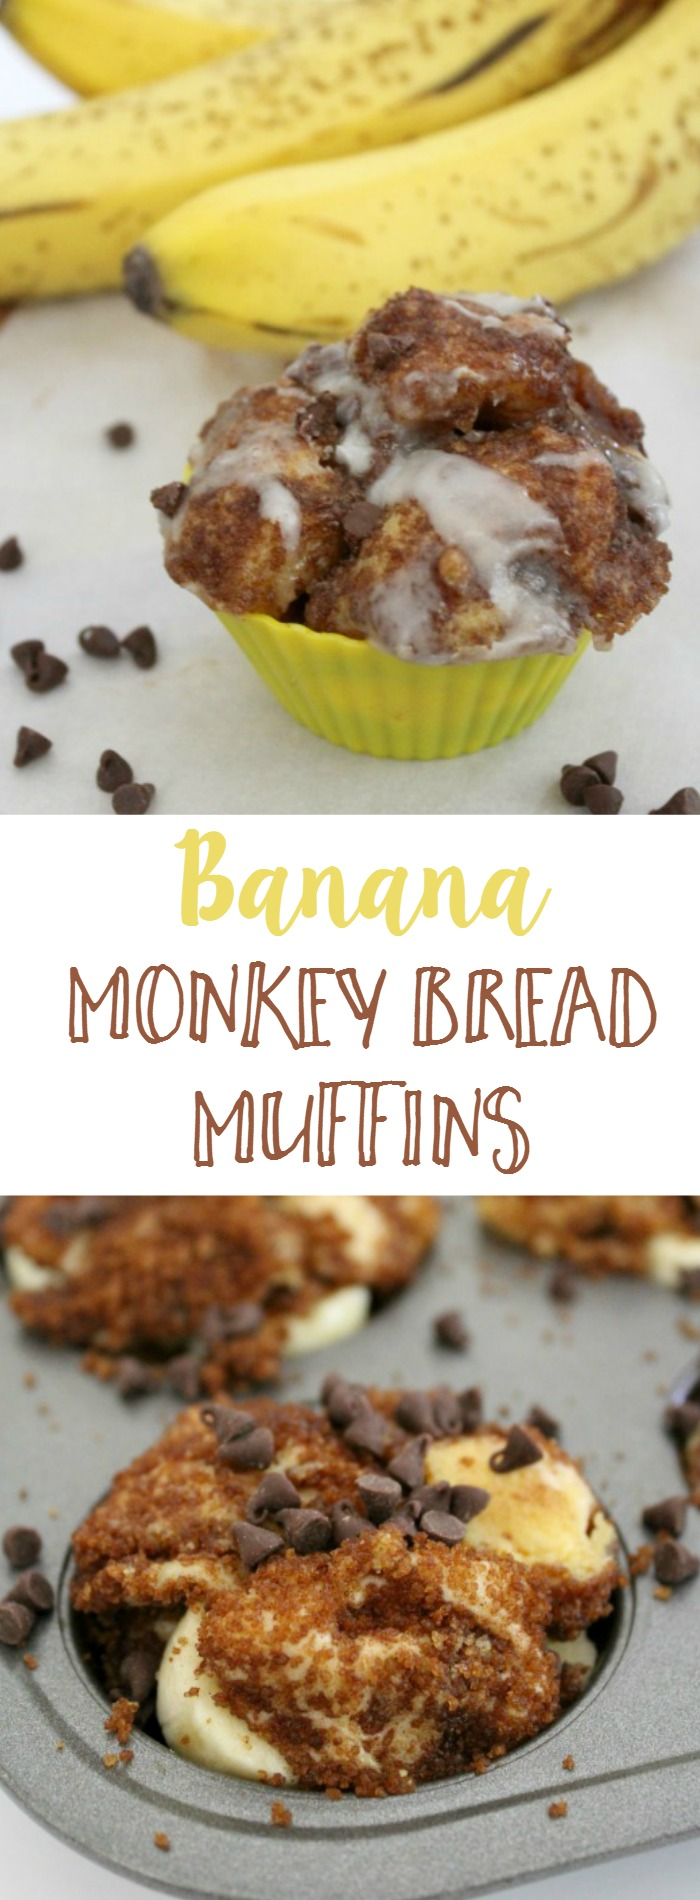 Banana Monkey Bread Muffins // Life Anchored #thejunglebook